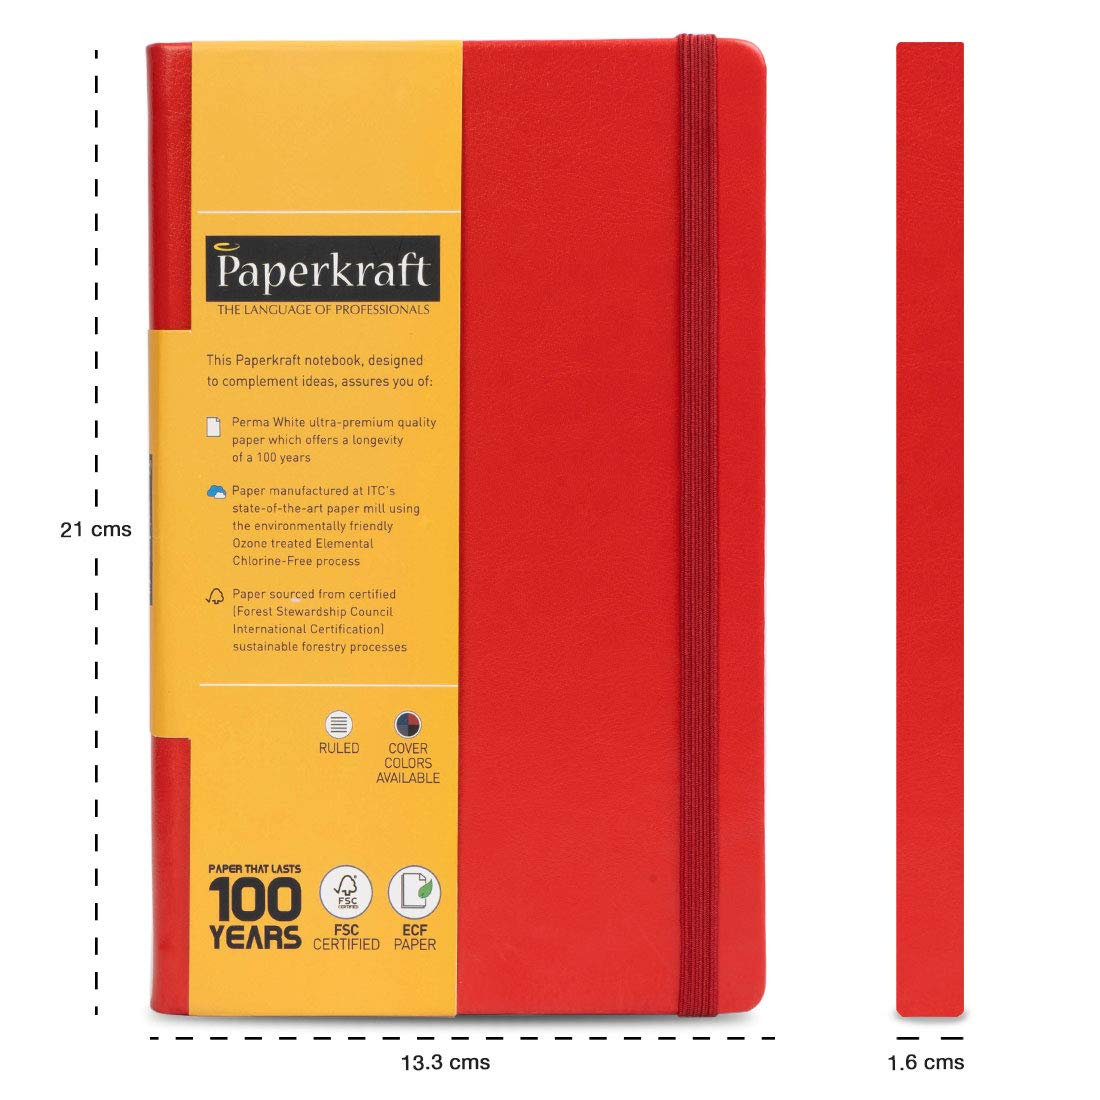 Paperkraft Notebook (Gift Pack) Red Cover and White Pages